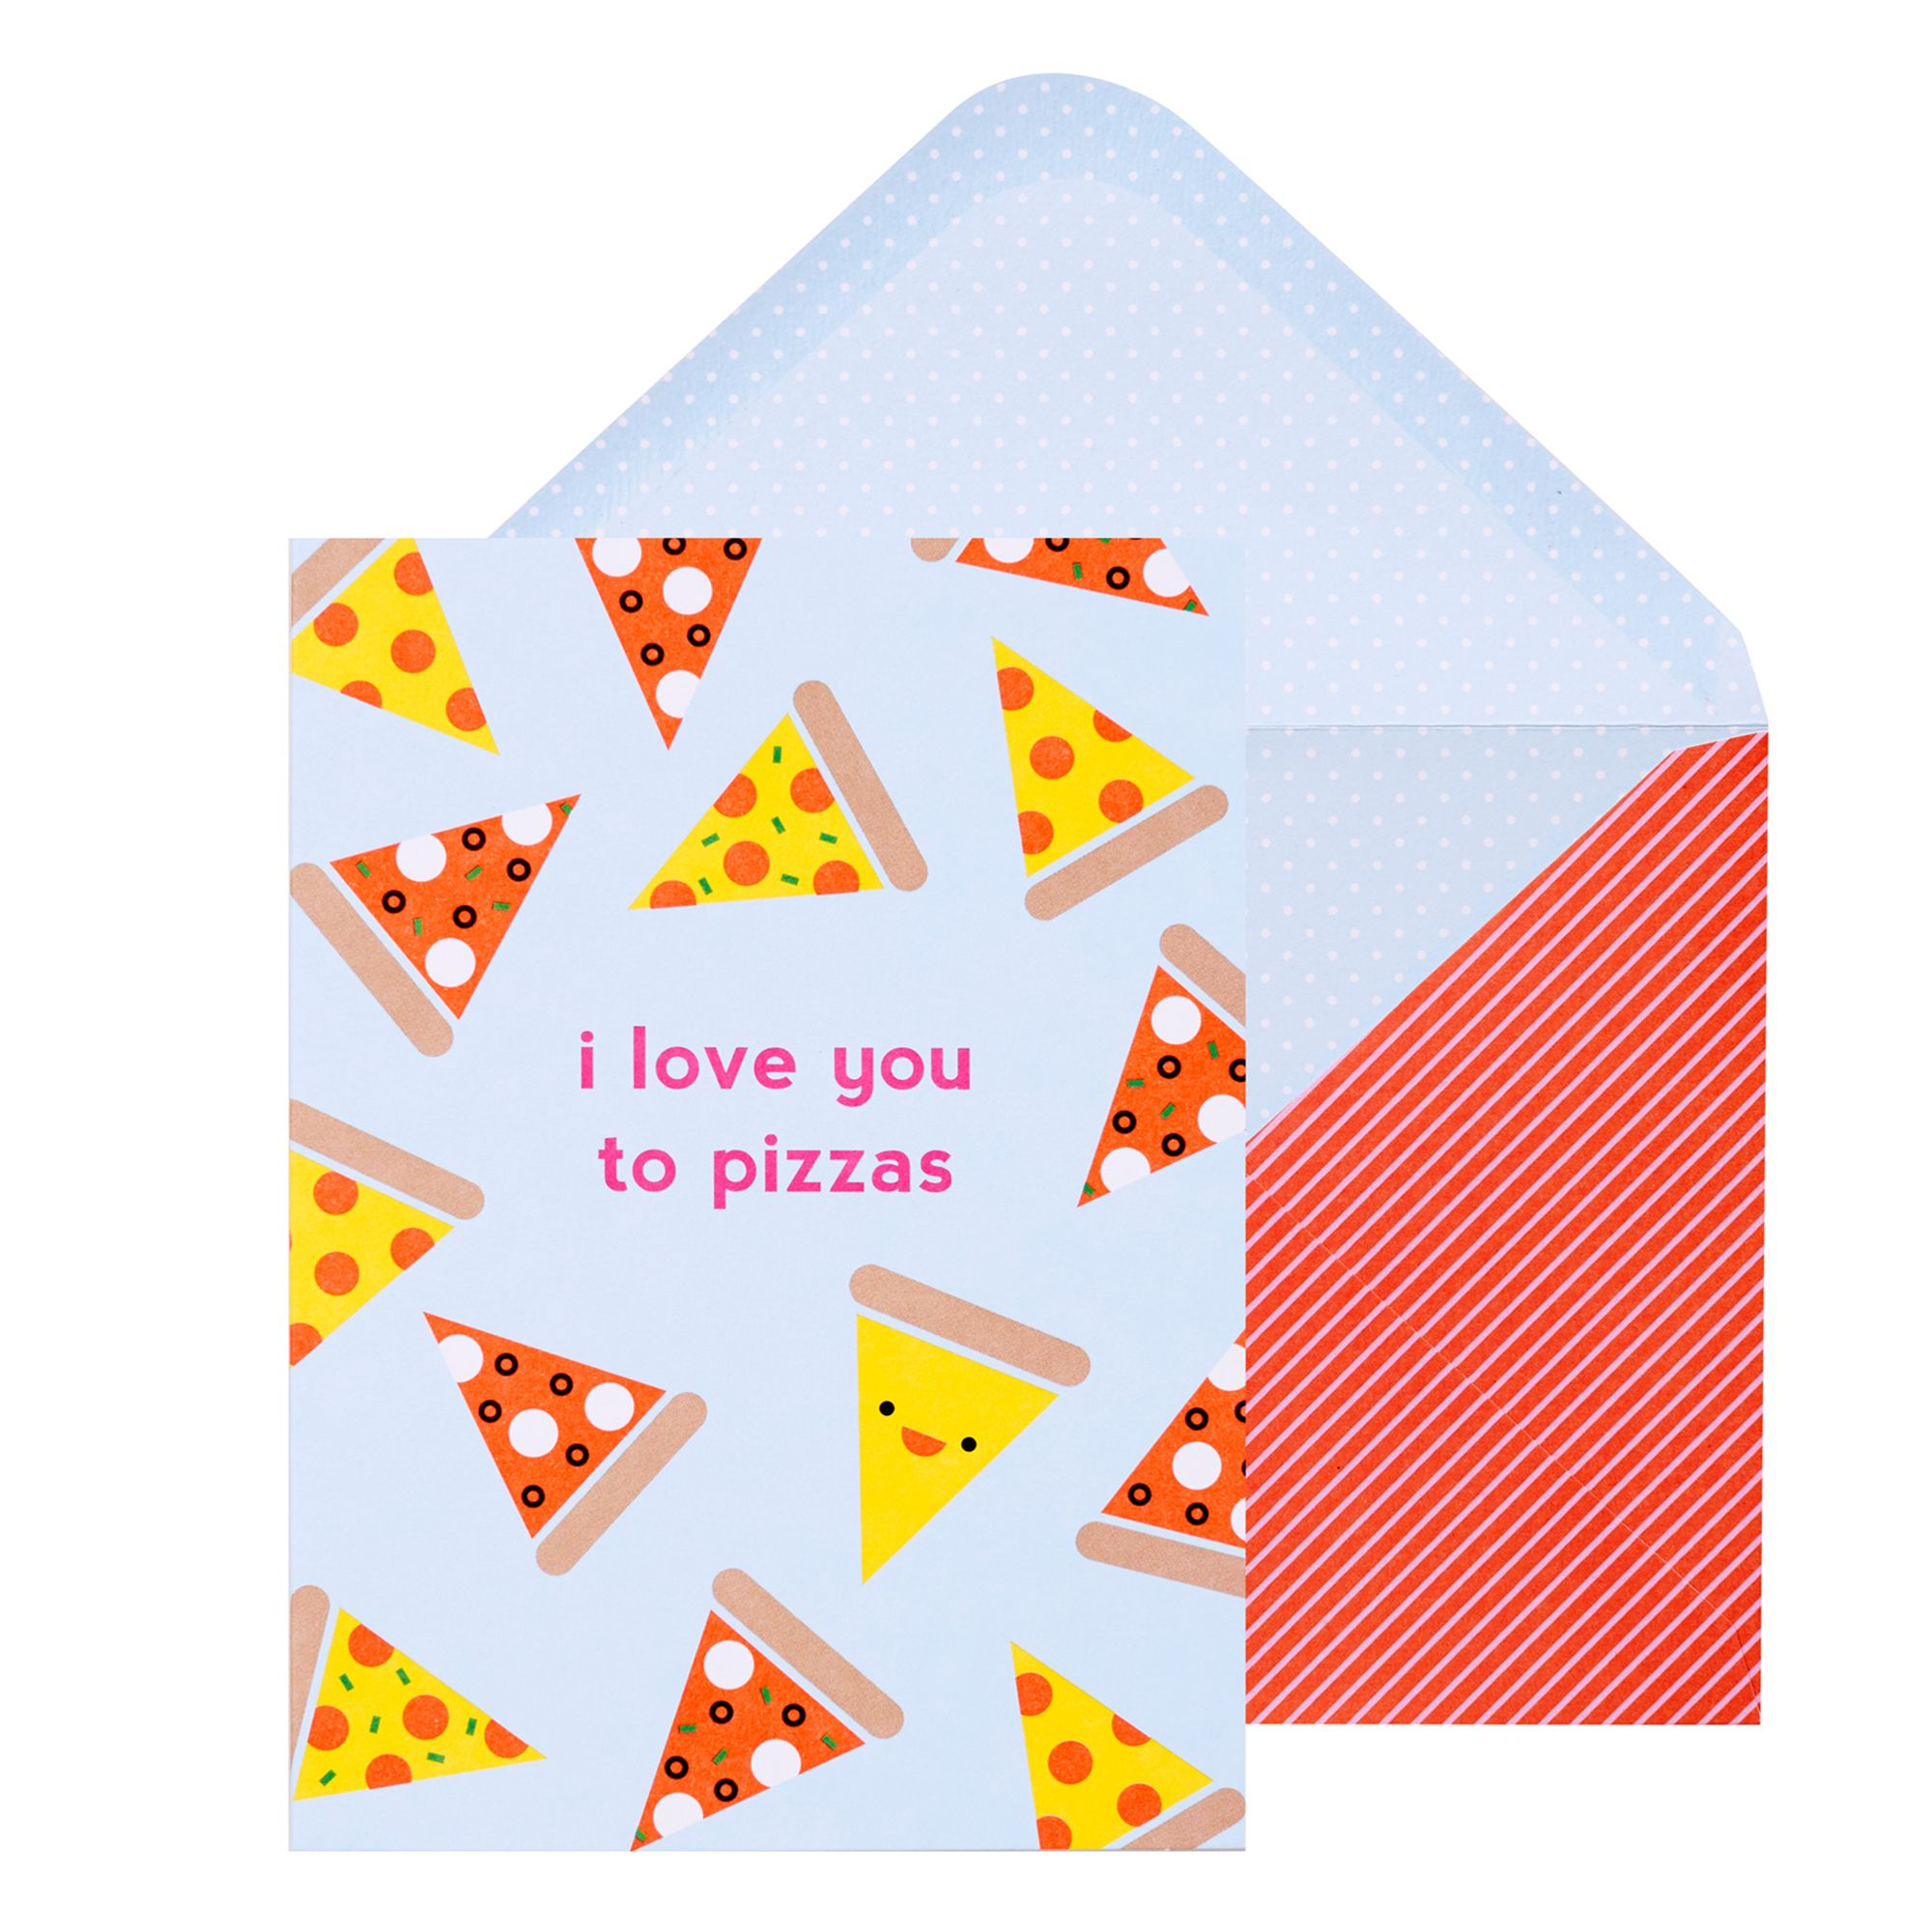 Greeting Card Software Shop Collectibles Online Daily: A6 Greeting Card Love You Pizza: Cute